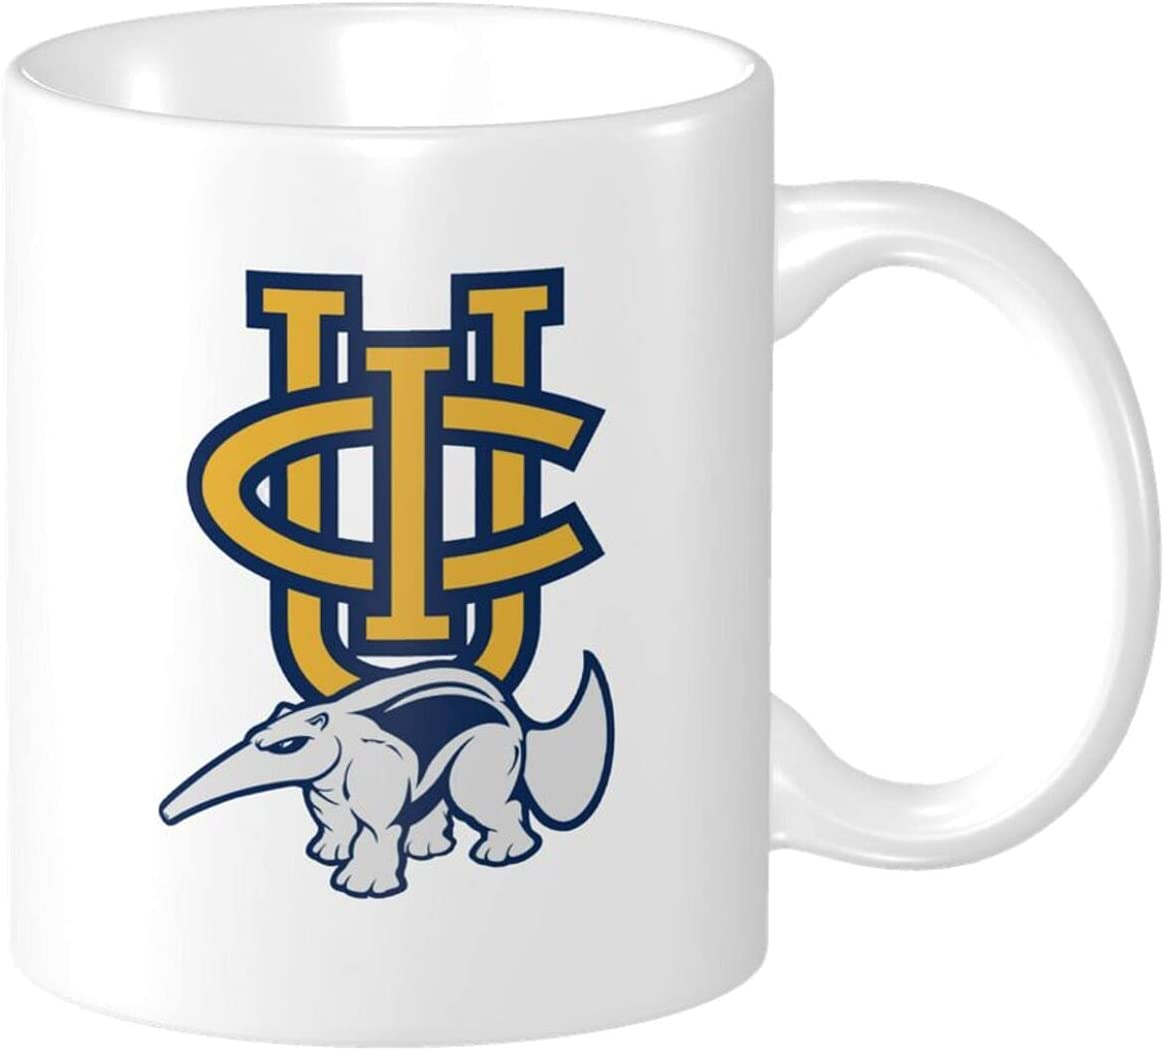 Uci University Of California, Irvine Anteaters Ceramic Coffee Mugs For Office And Home, Coffee Mugs For Relatives And Friends, Tea Cups For Mother'S Day, Father'S Day, Christmas And Birthdays, 11 Oz